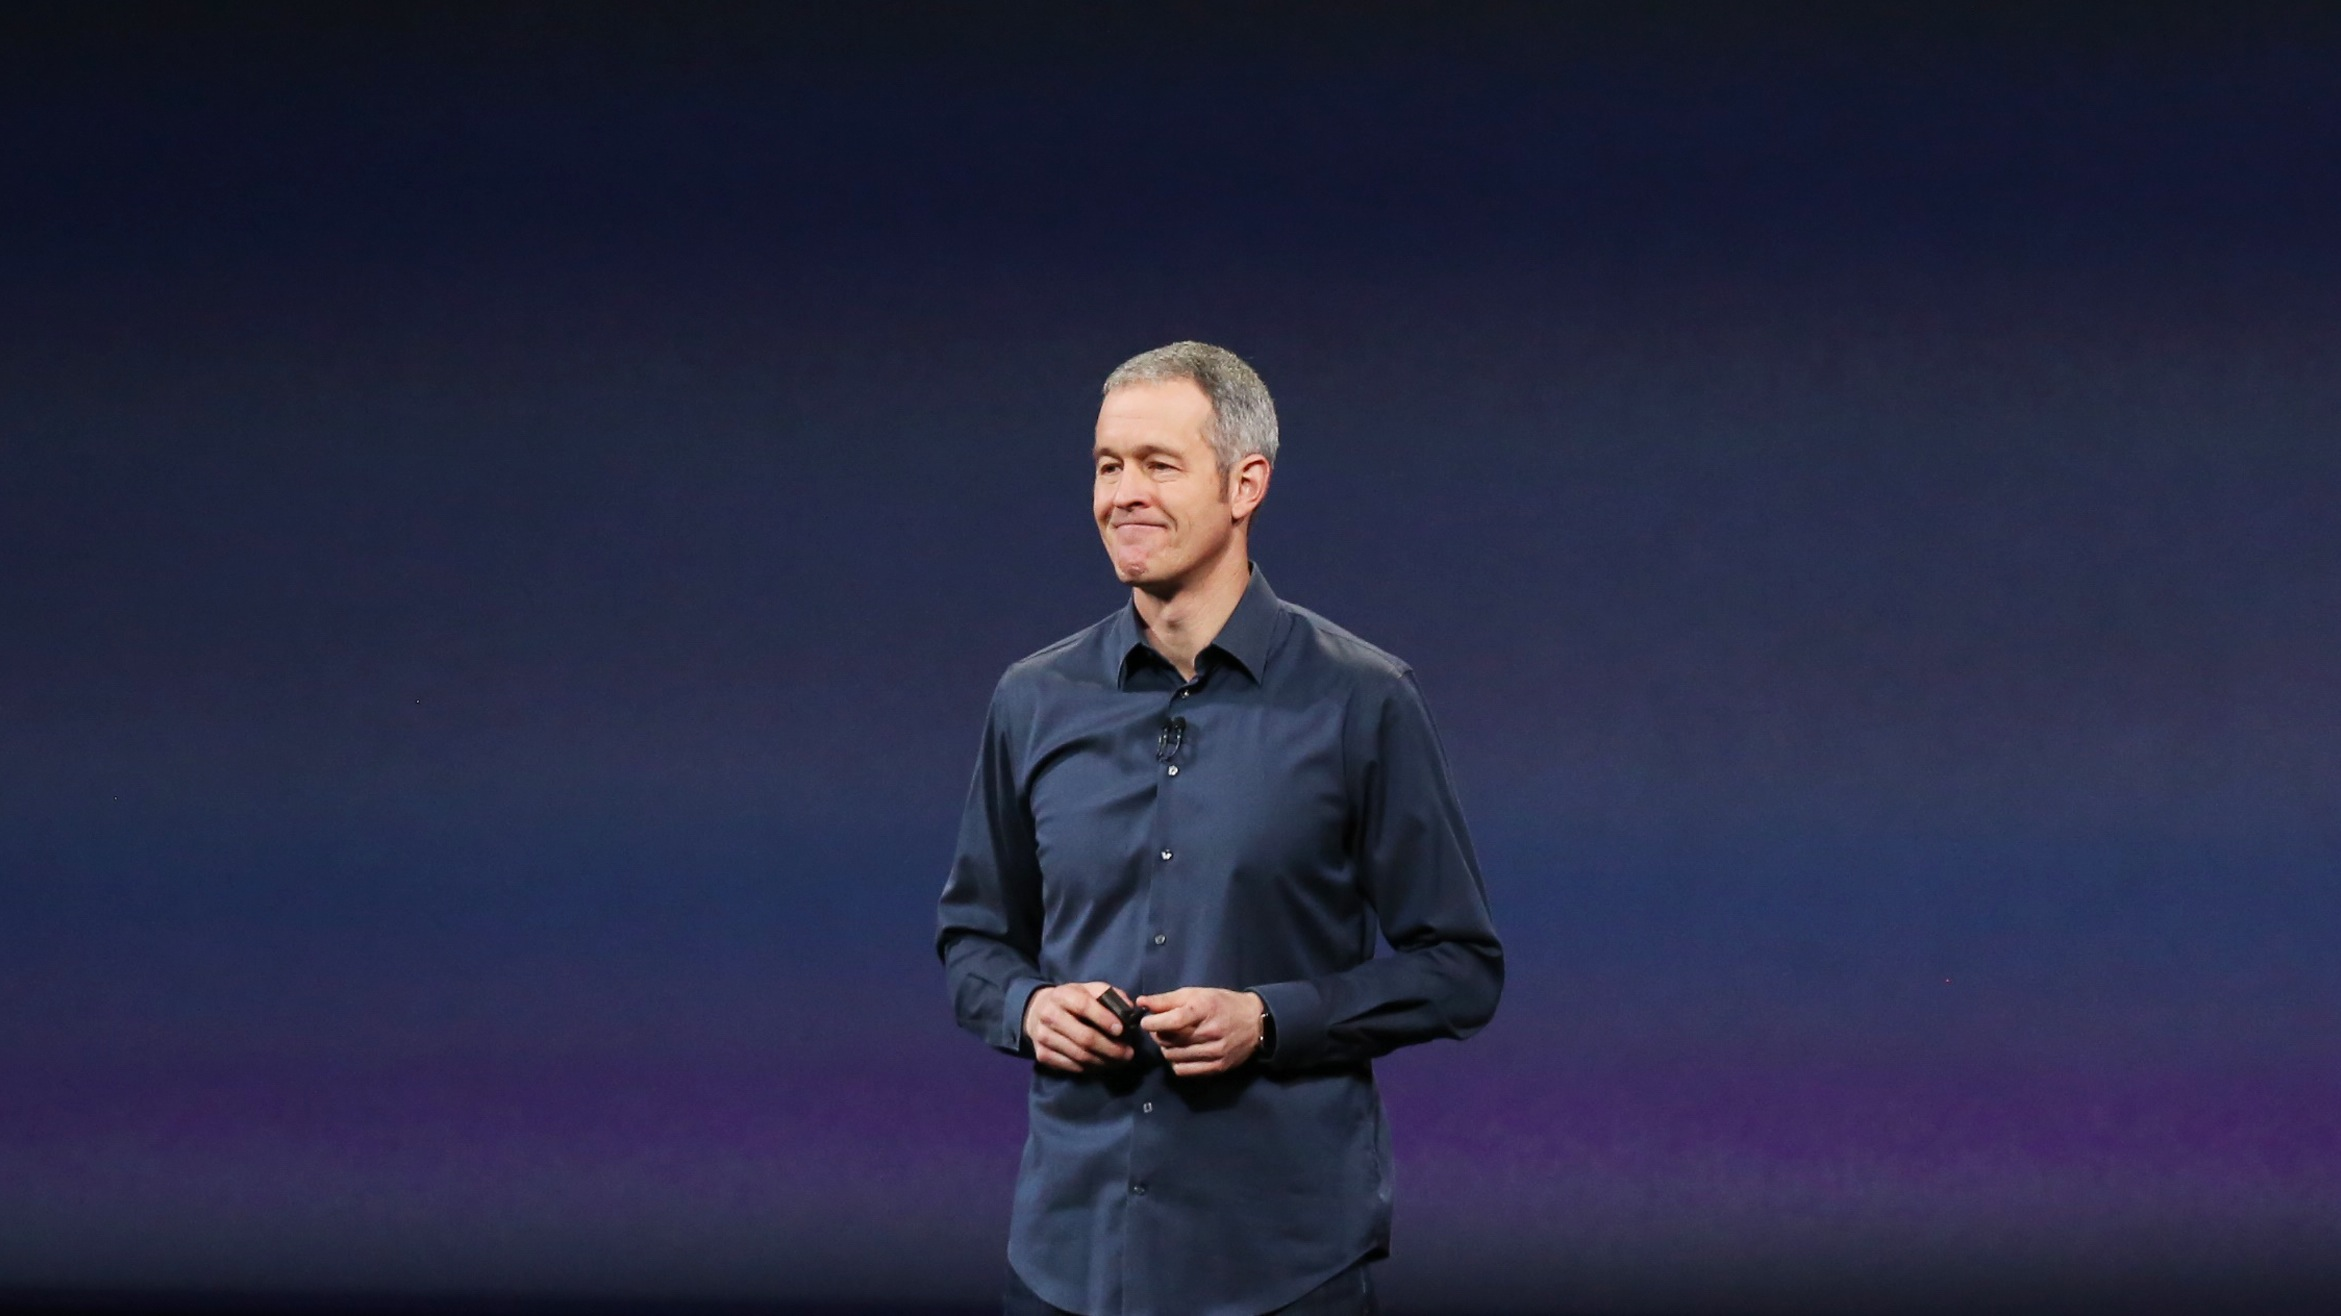 Apple's senior vice president of Operations Jeff Williams speaks about Apple's medical research kit  during an Apple event in San Francisco, California March 9, 2015.  REUTERS/Robert Galbraith (UNITED STATES  - Tags: SCIENCE TECHNOLOGY BUSINESS)   - RTR4SNAP